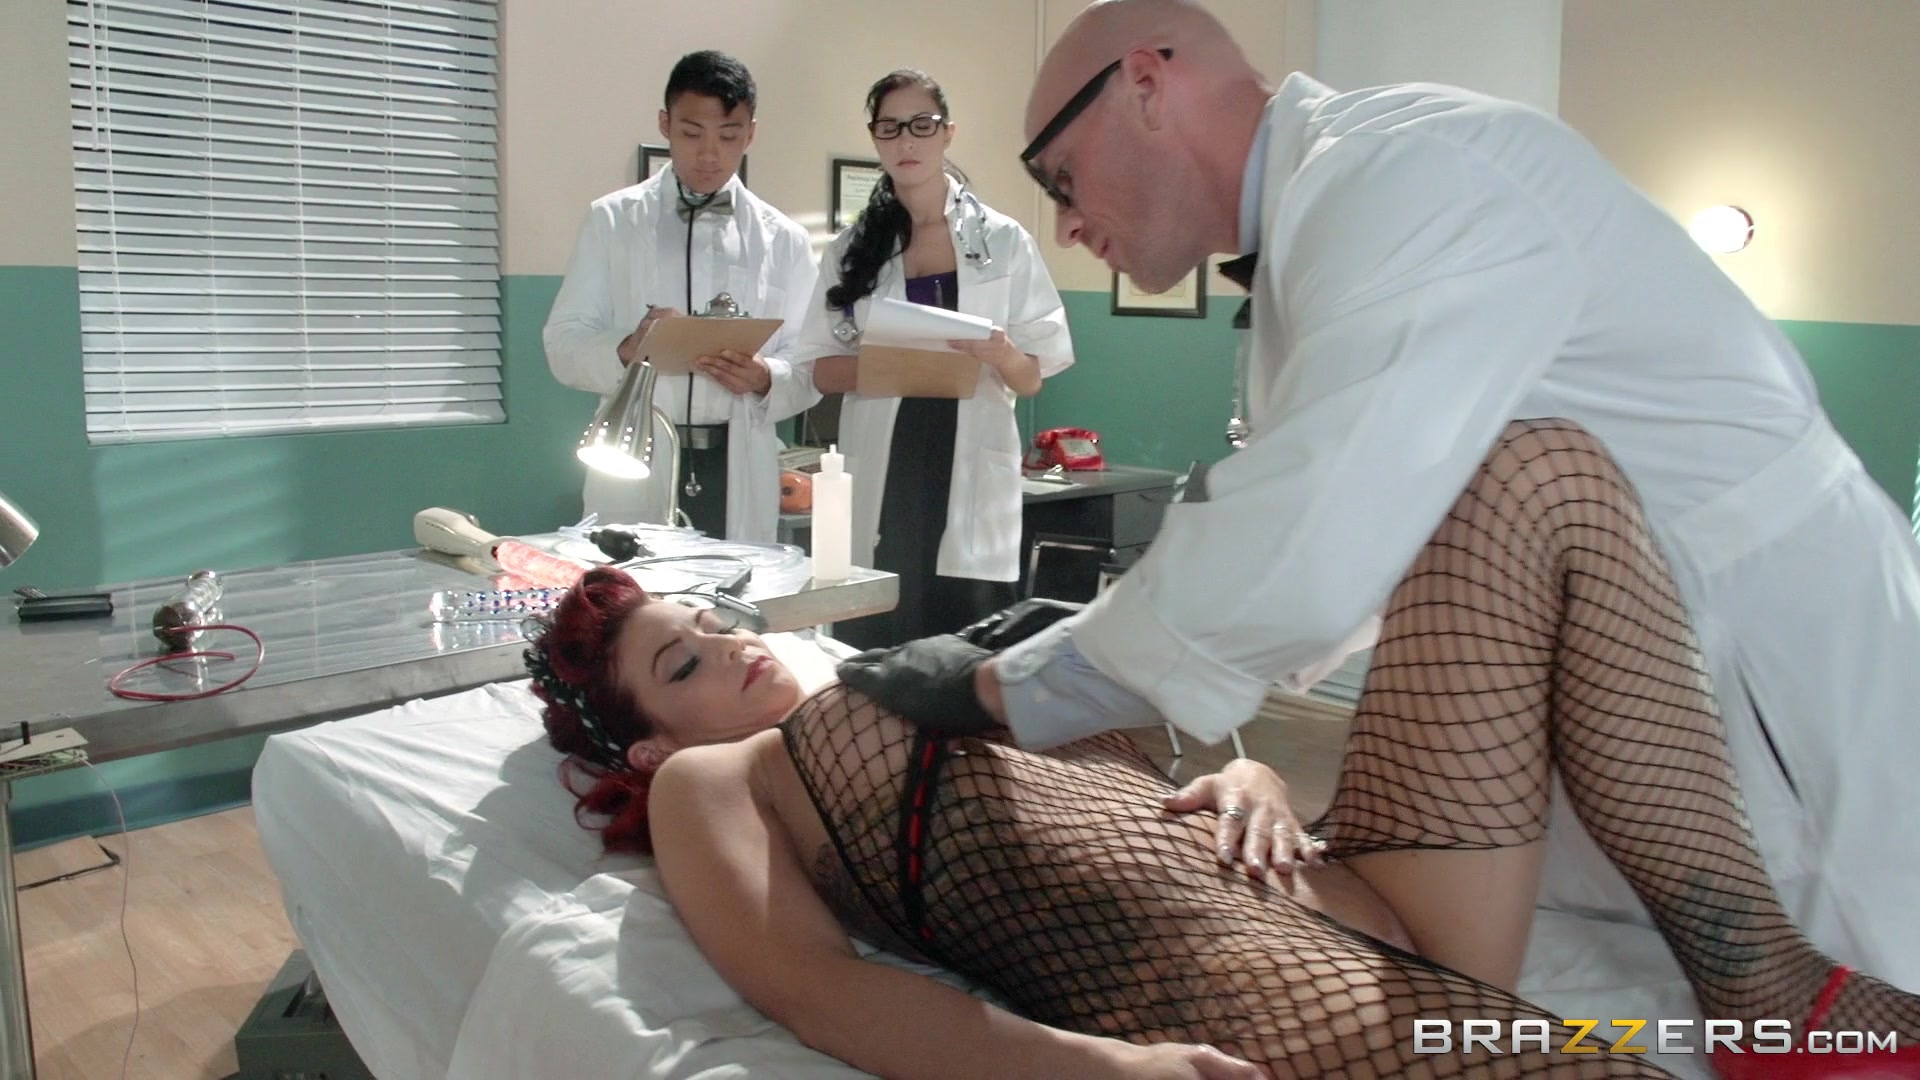 Busty Redhead Ryder Skye Gets Fucked Standing Up by Doctor. Starring: Ryder Skye Length: 32 min